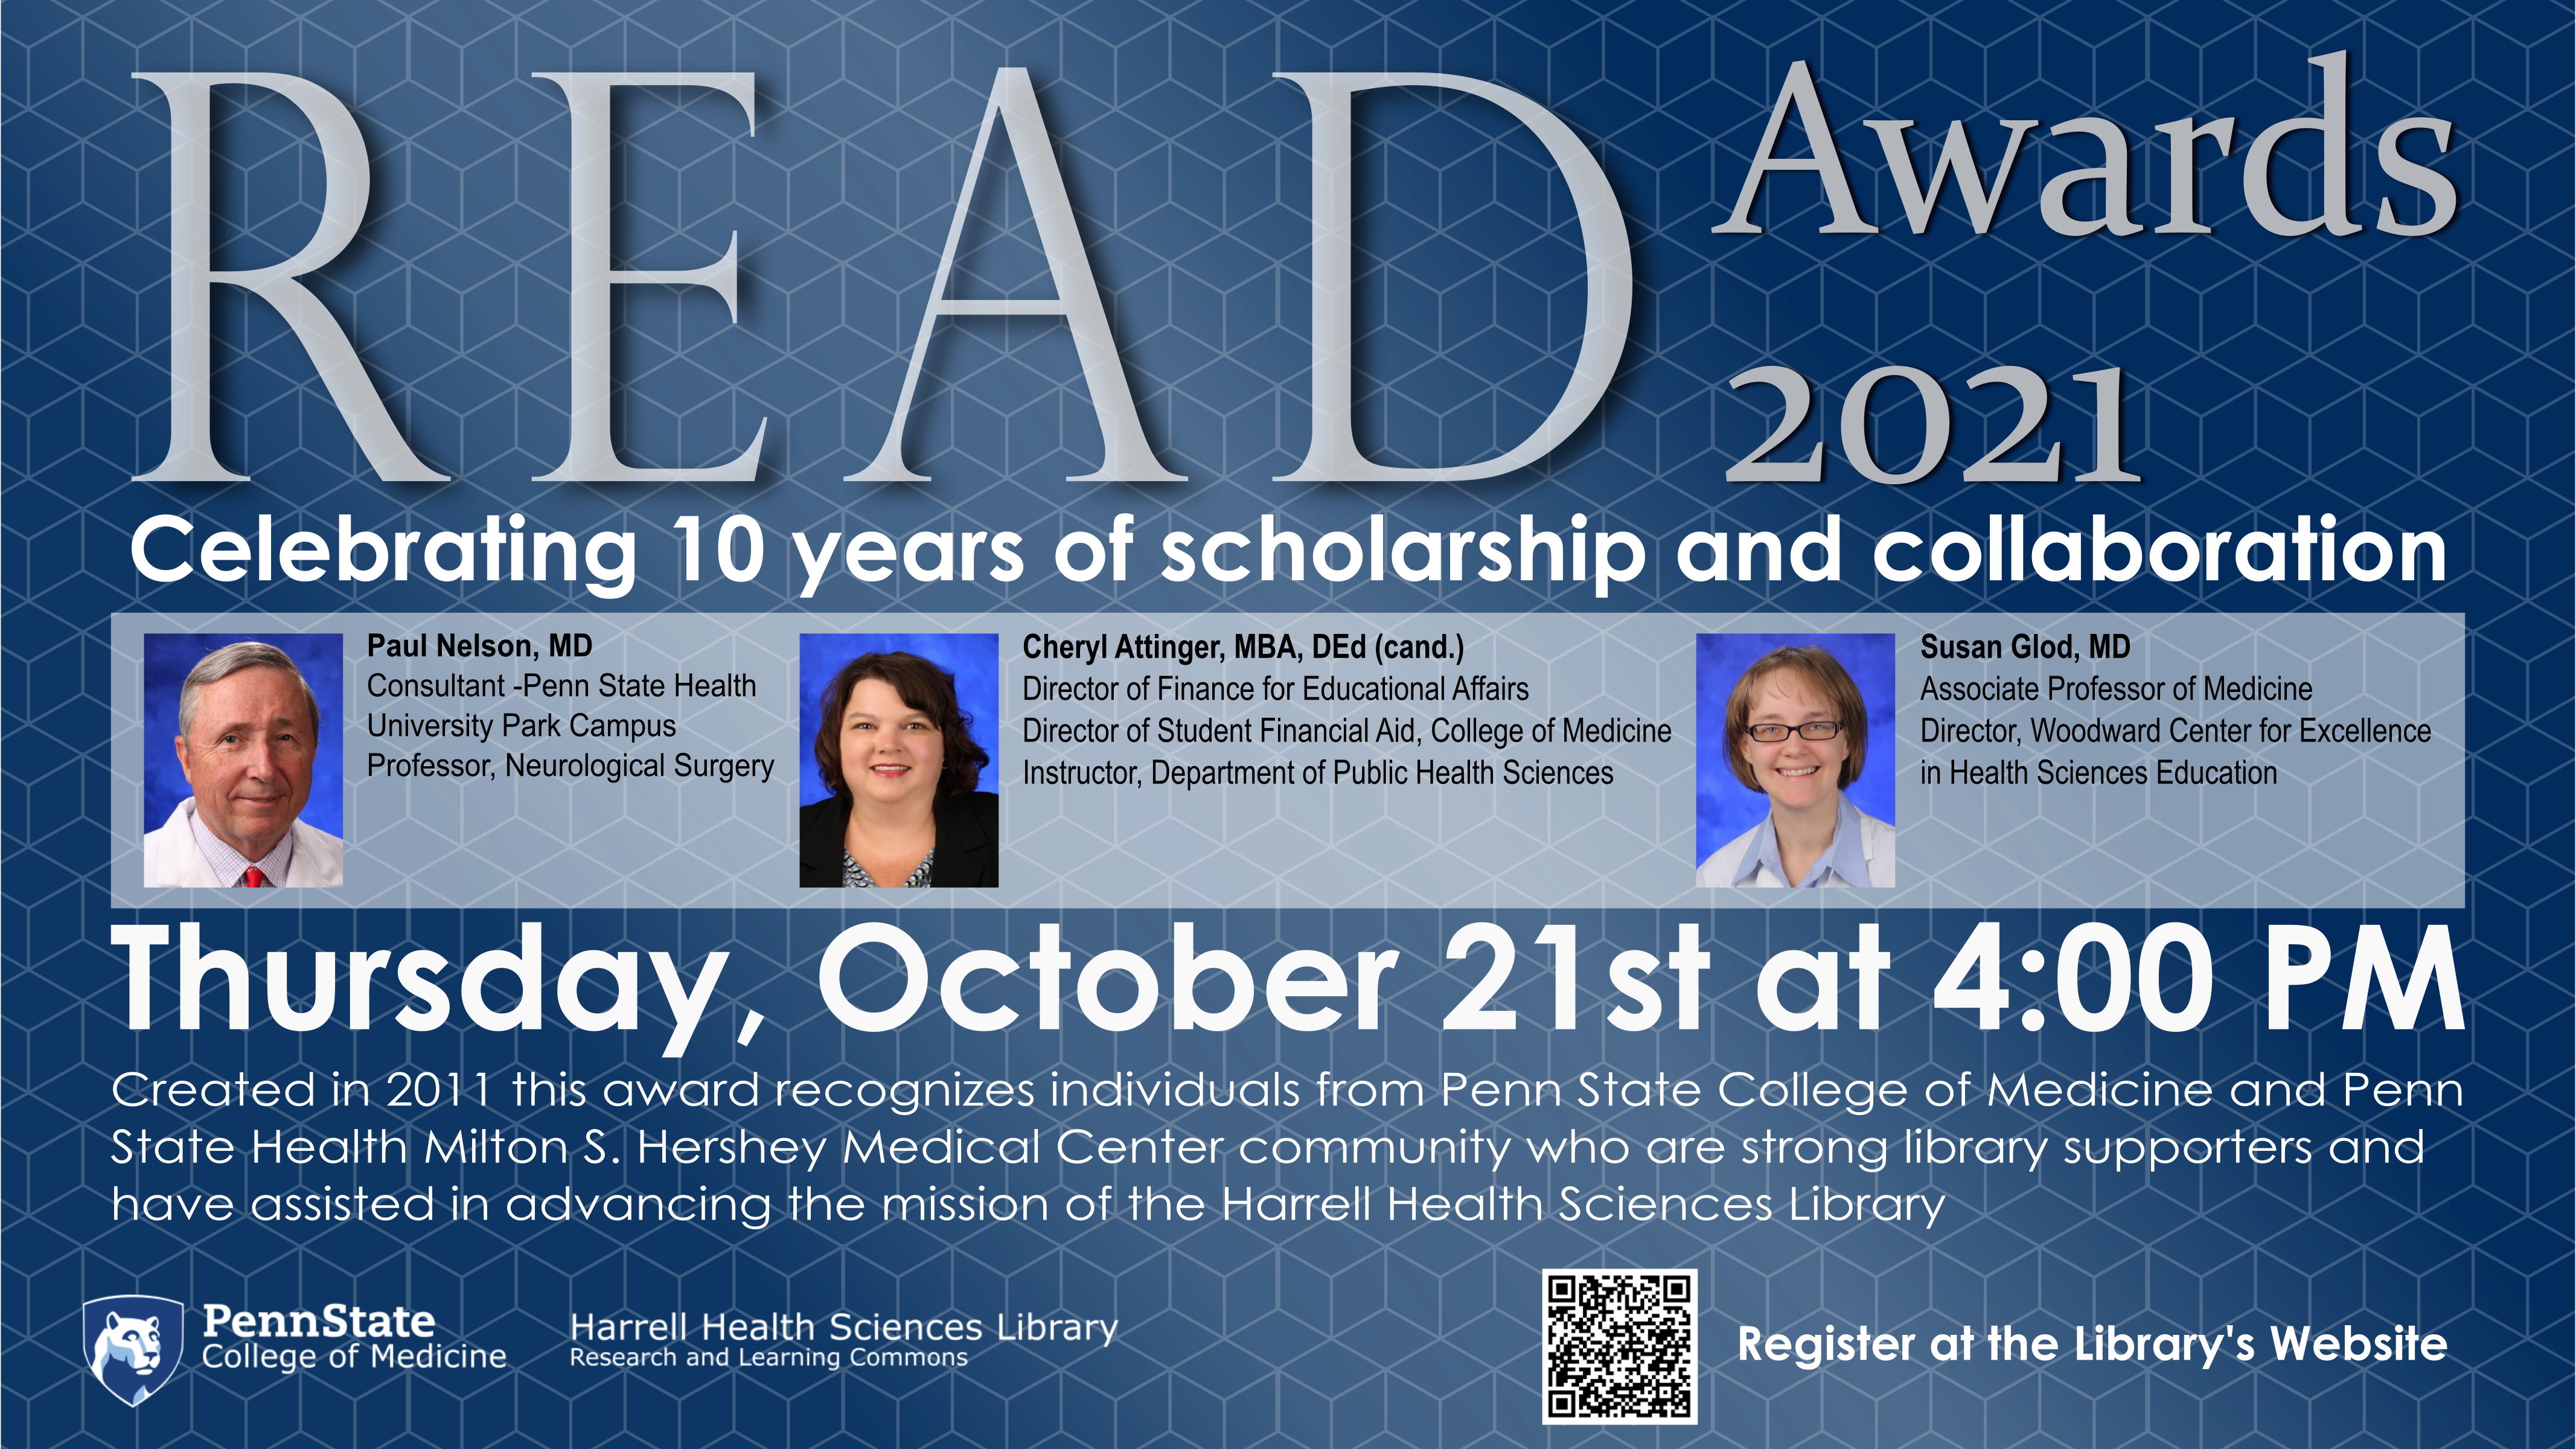 READ Poster Recognition Award